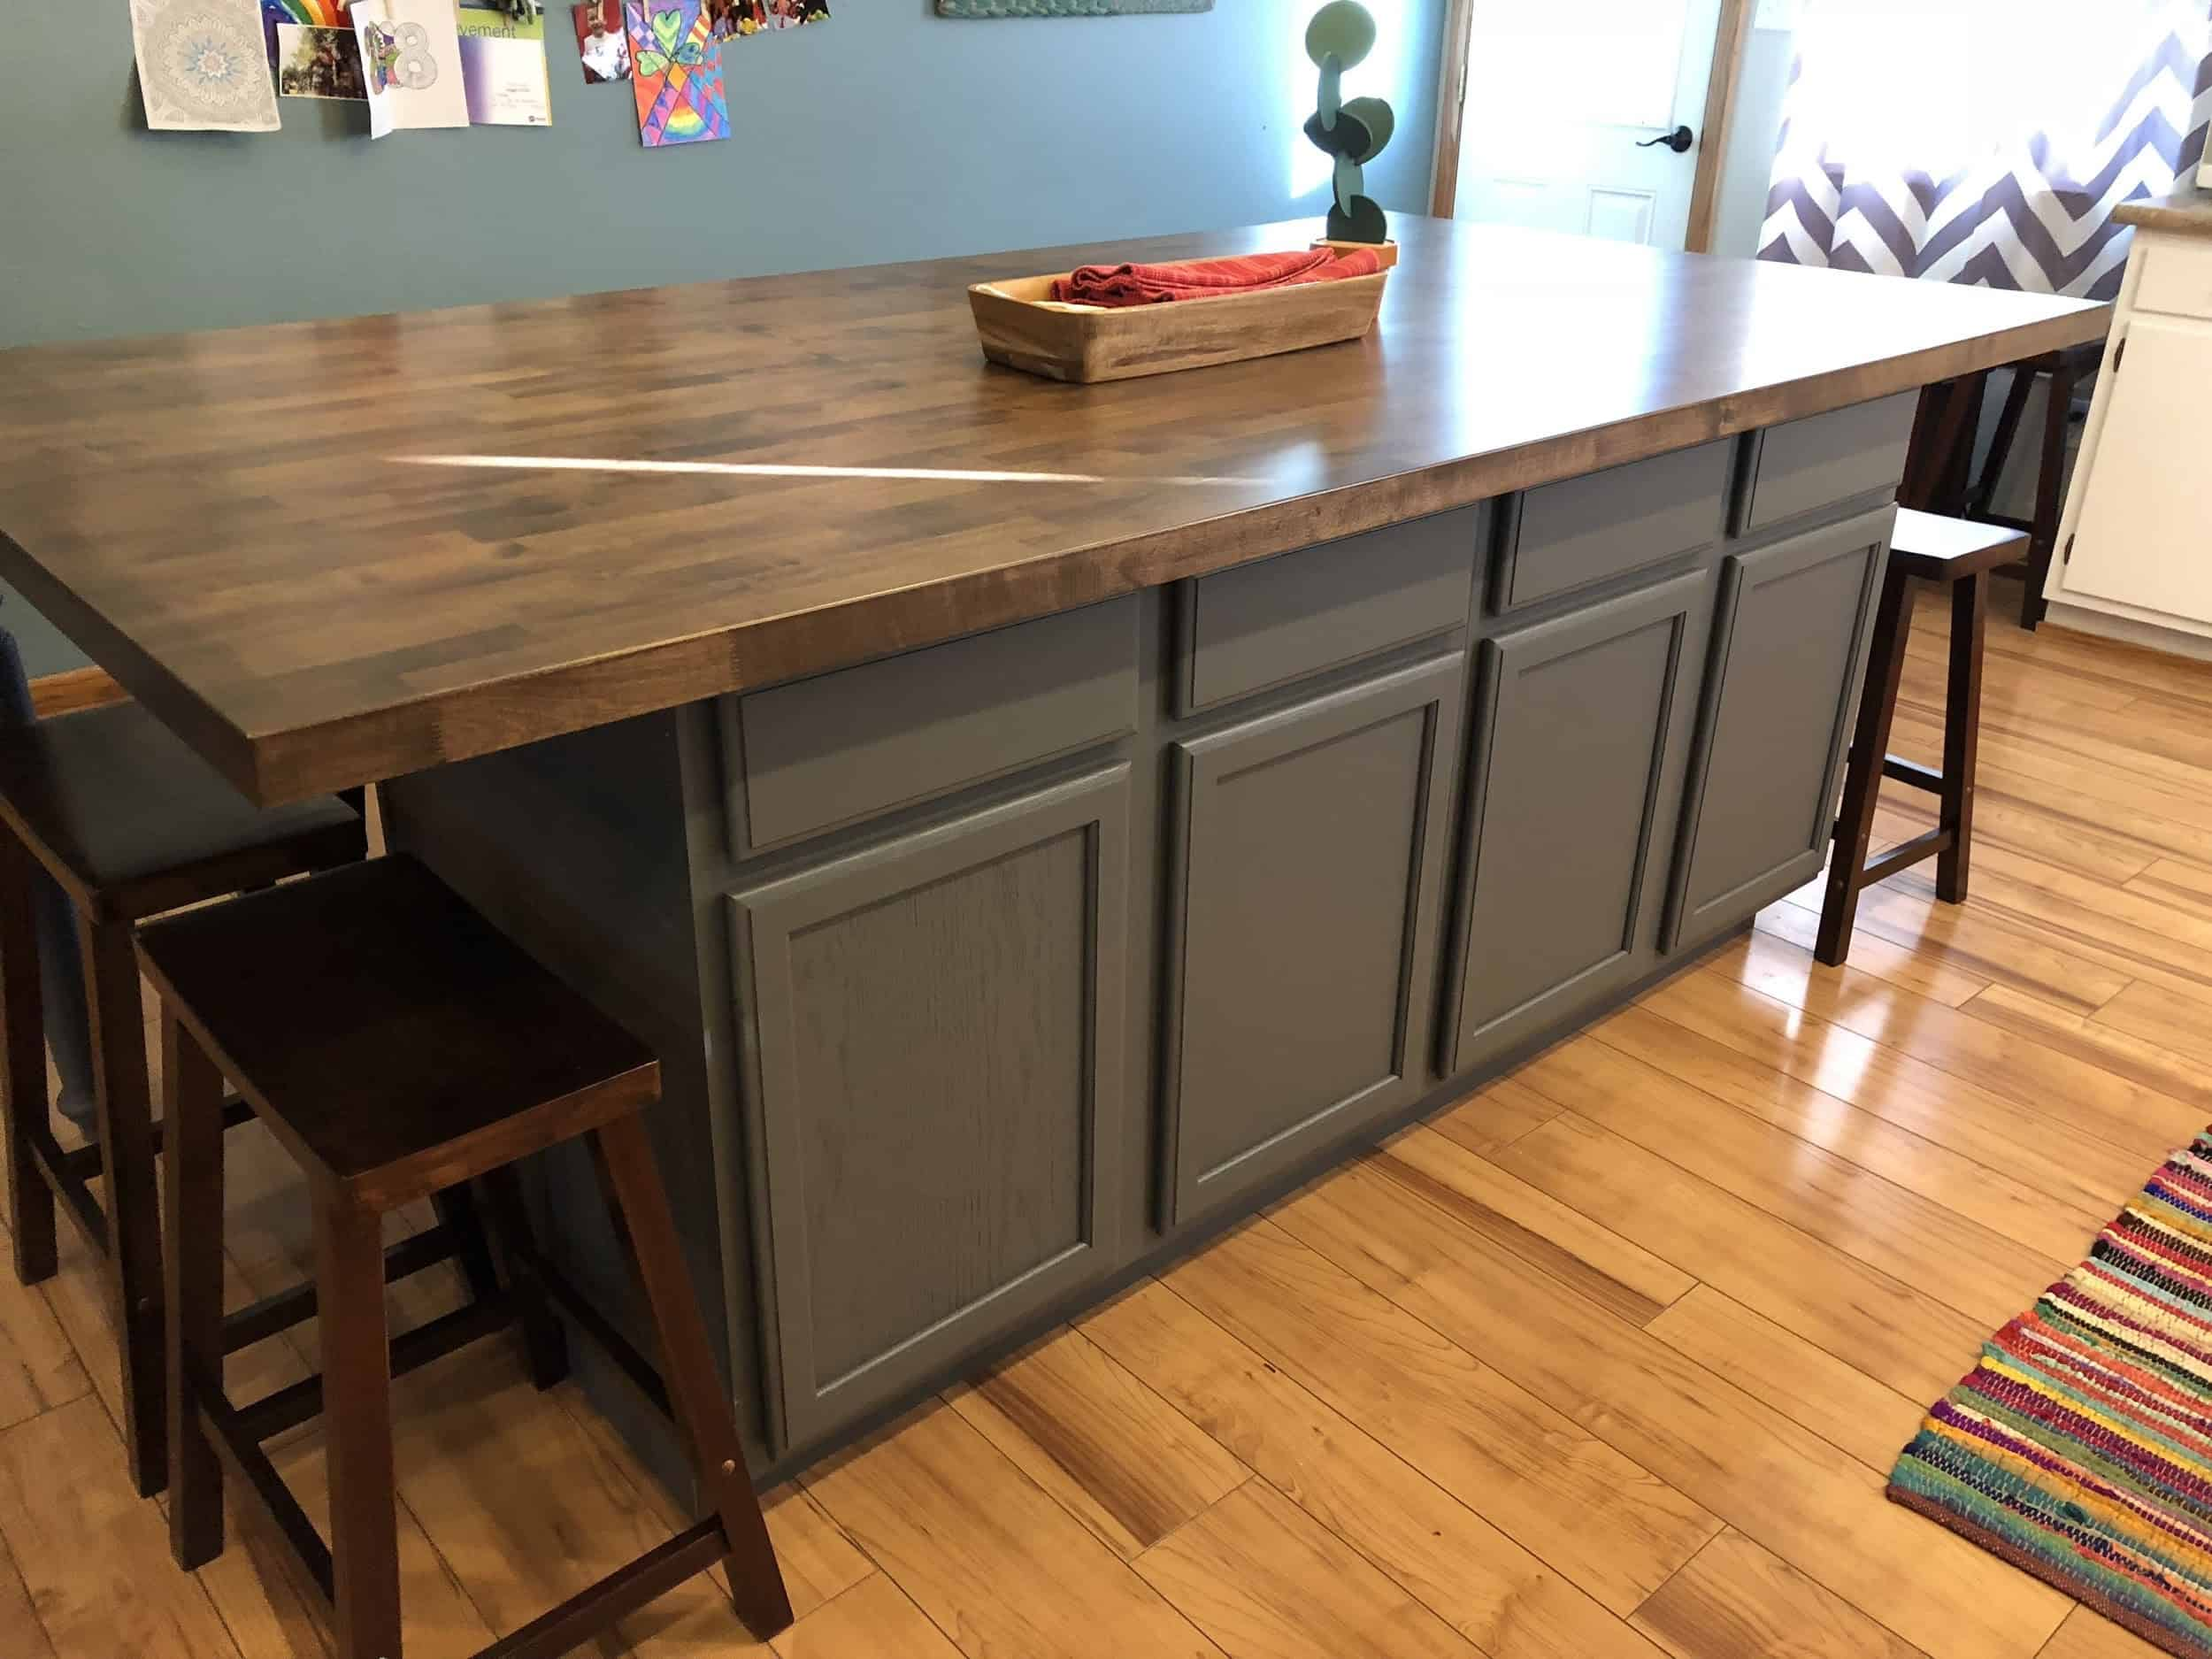 A Kitchen Island Made From Stock Cabinets